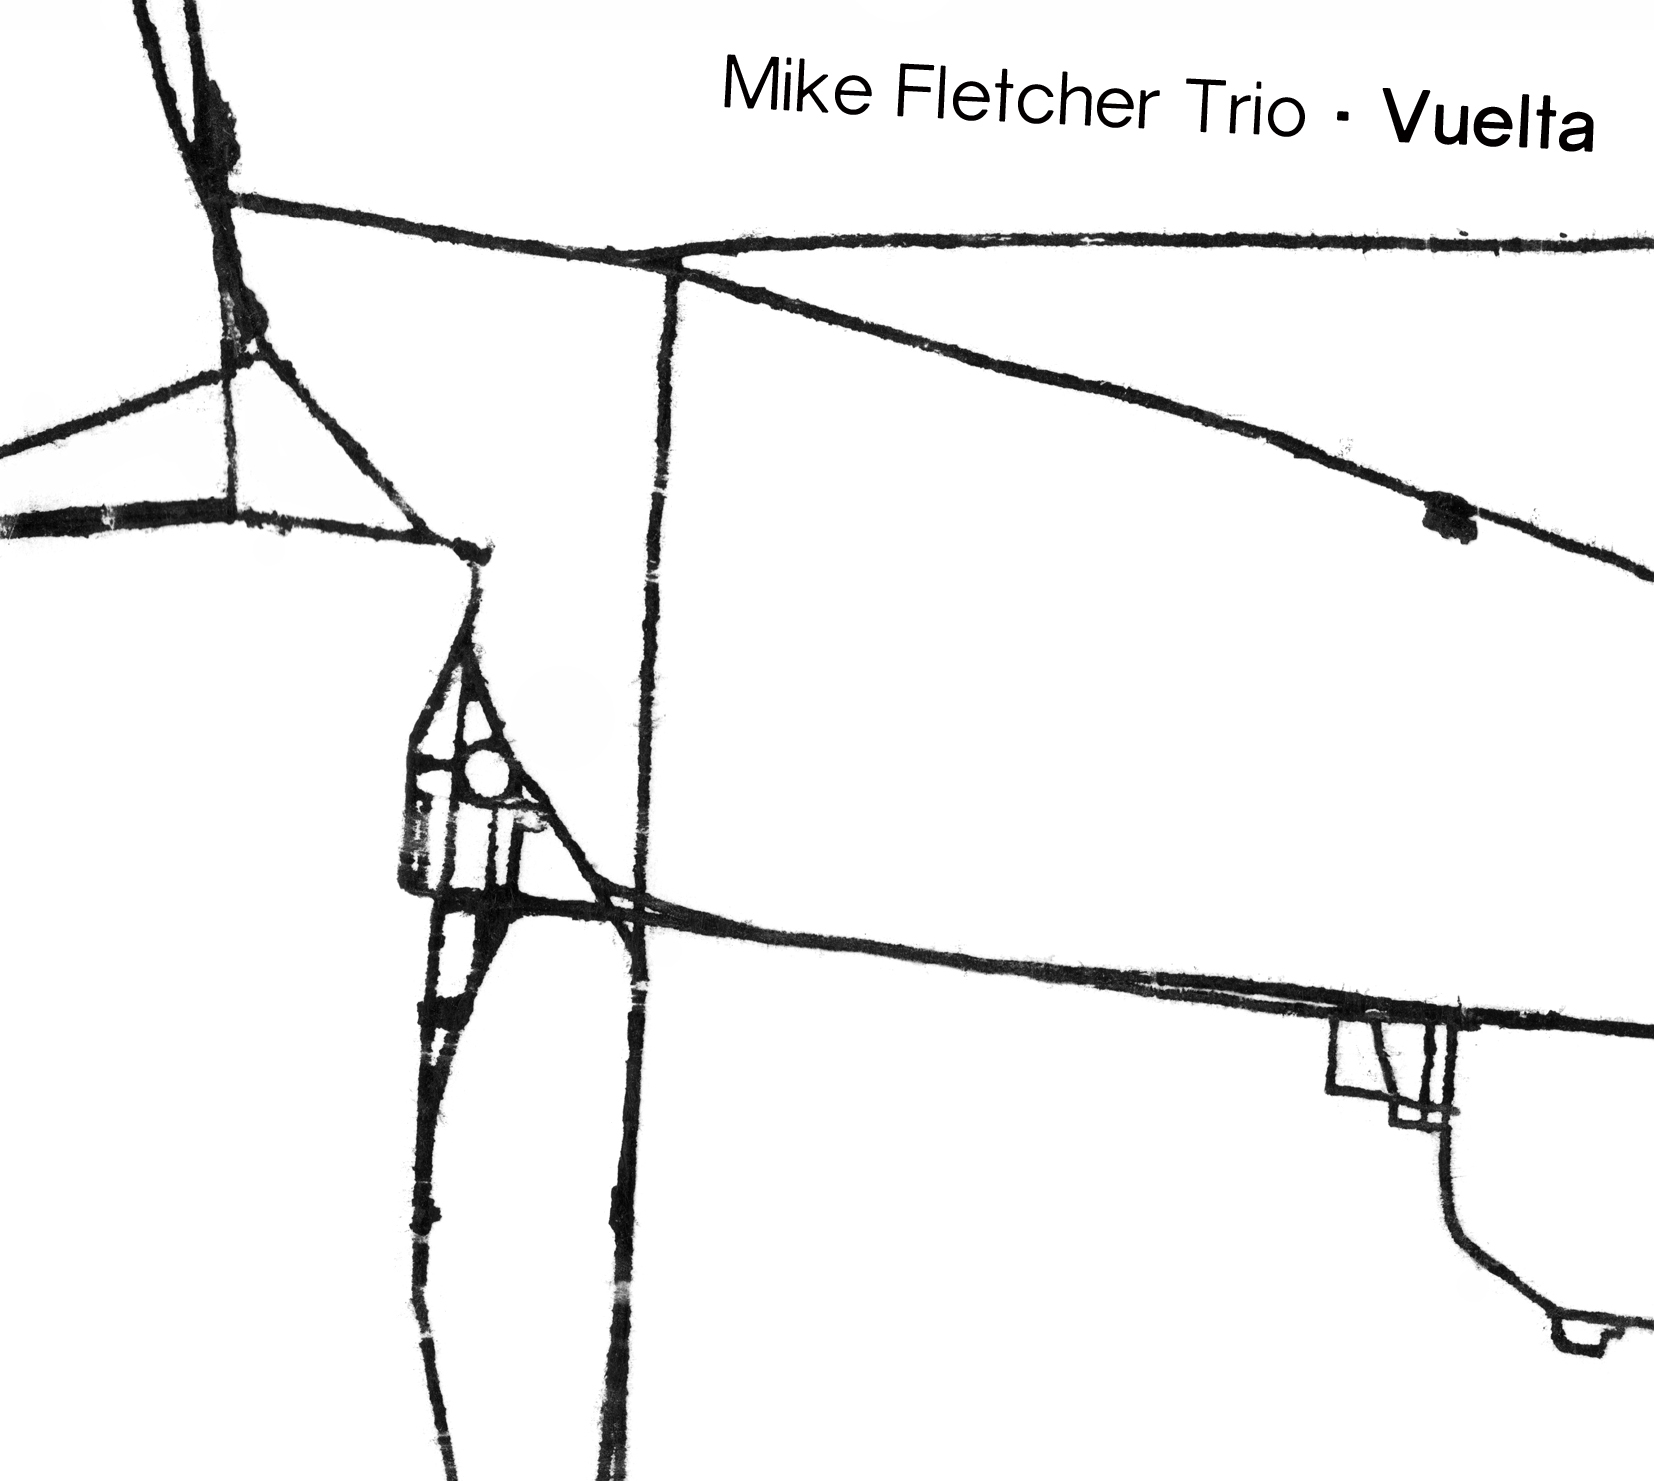 Mike Fletcher Trio - Vuelta cover image